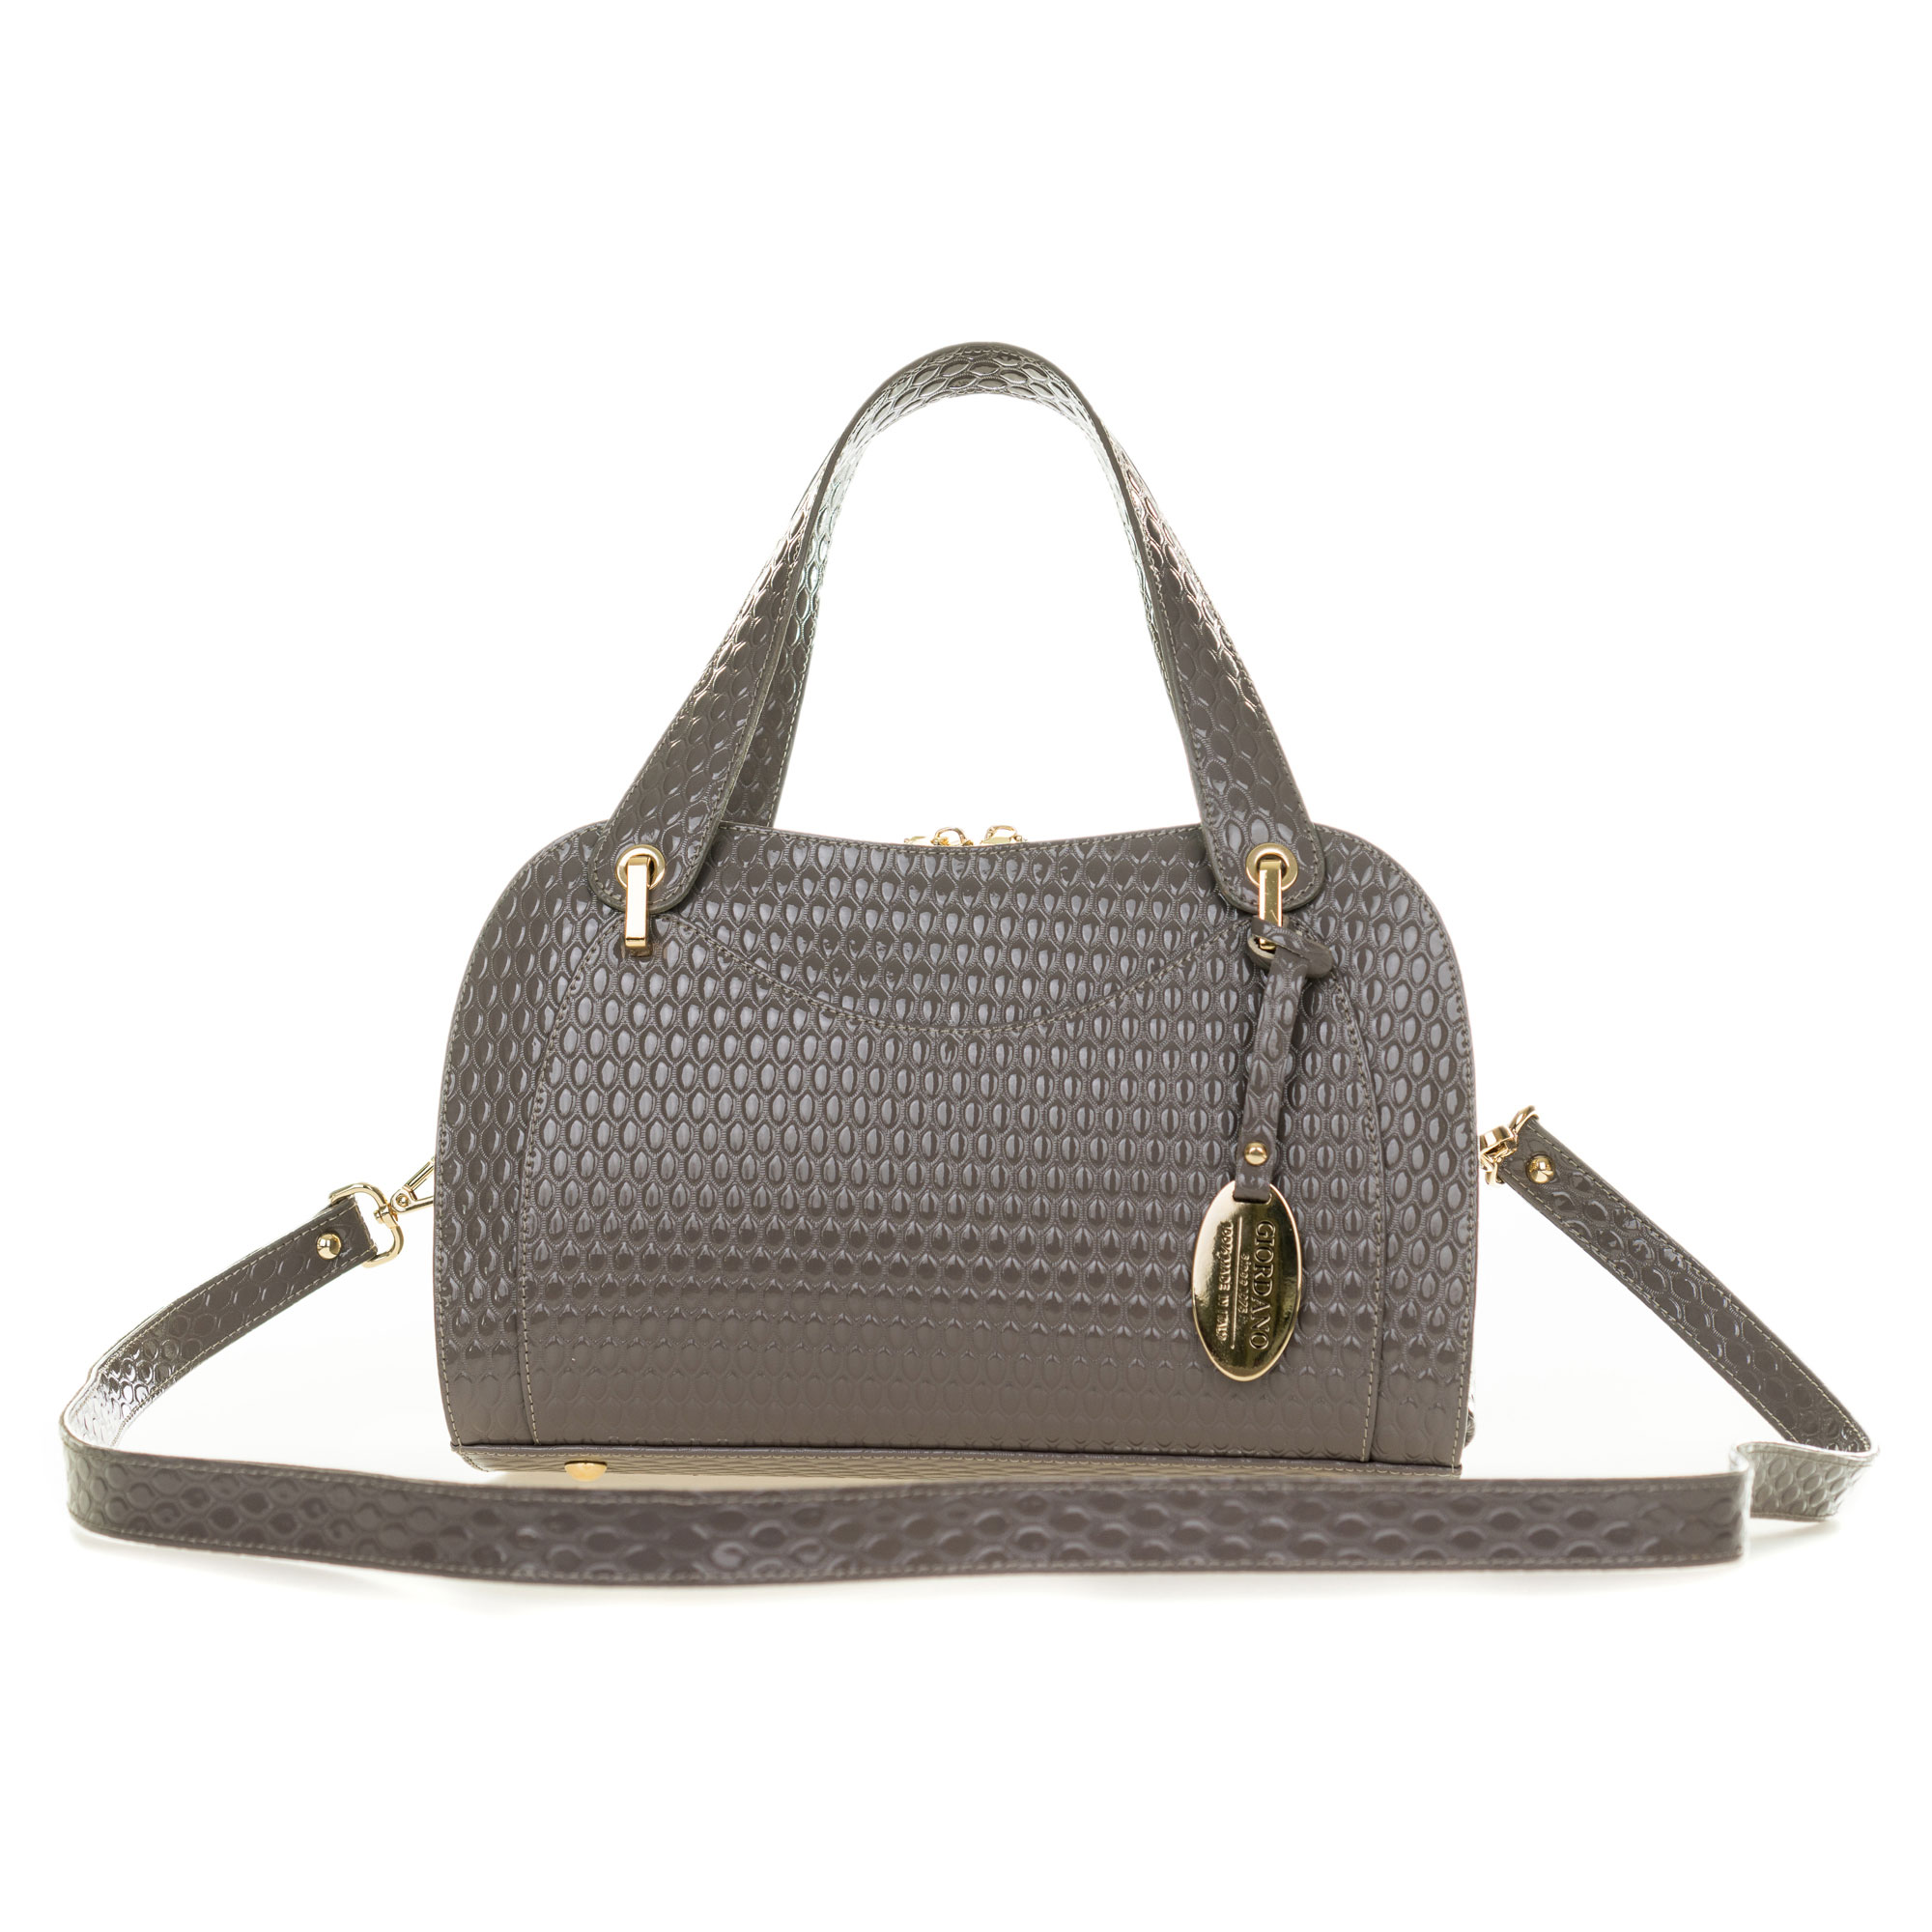 Taupe Gray Patent Embossed Leather Satchel Handbag Made in ...